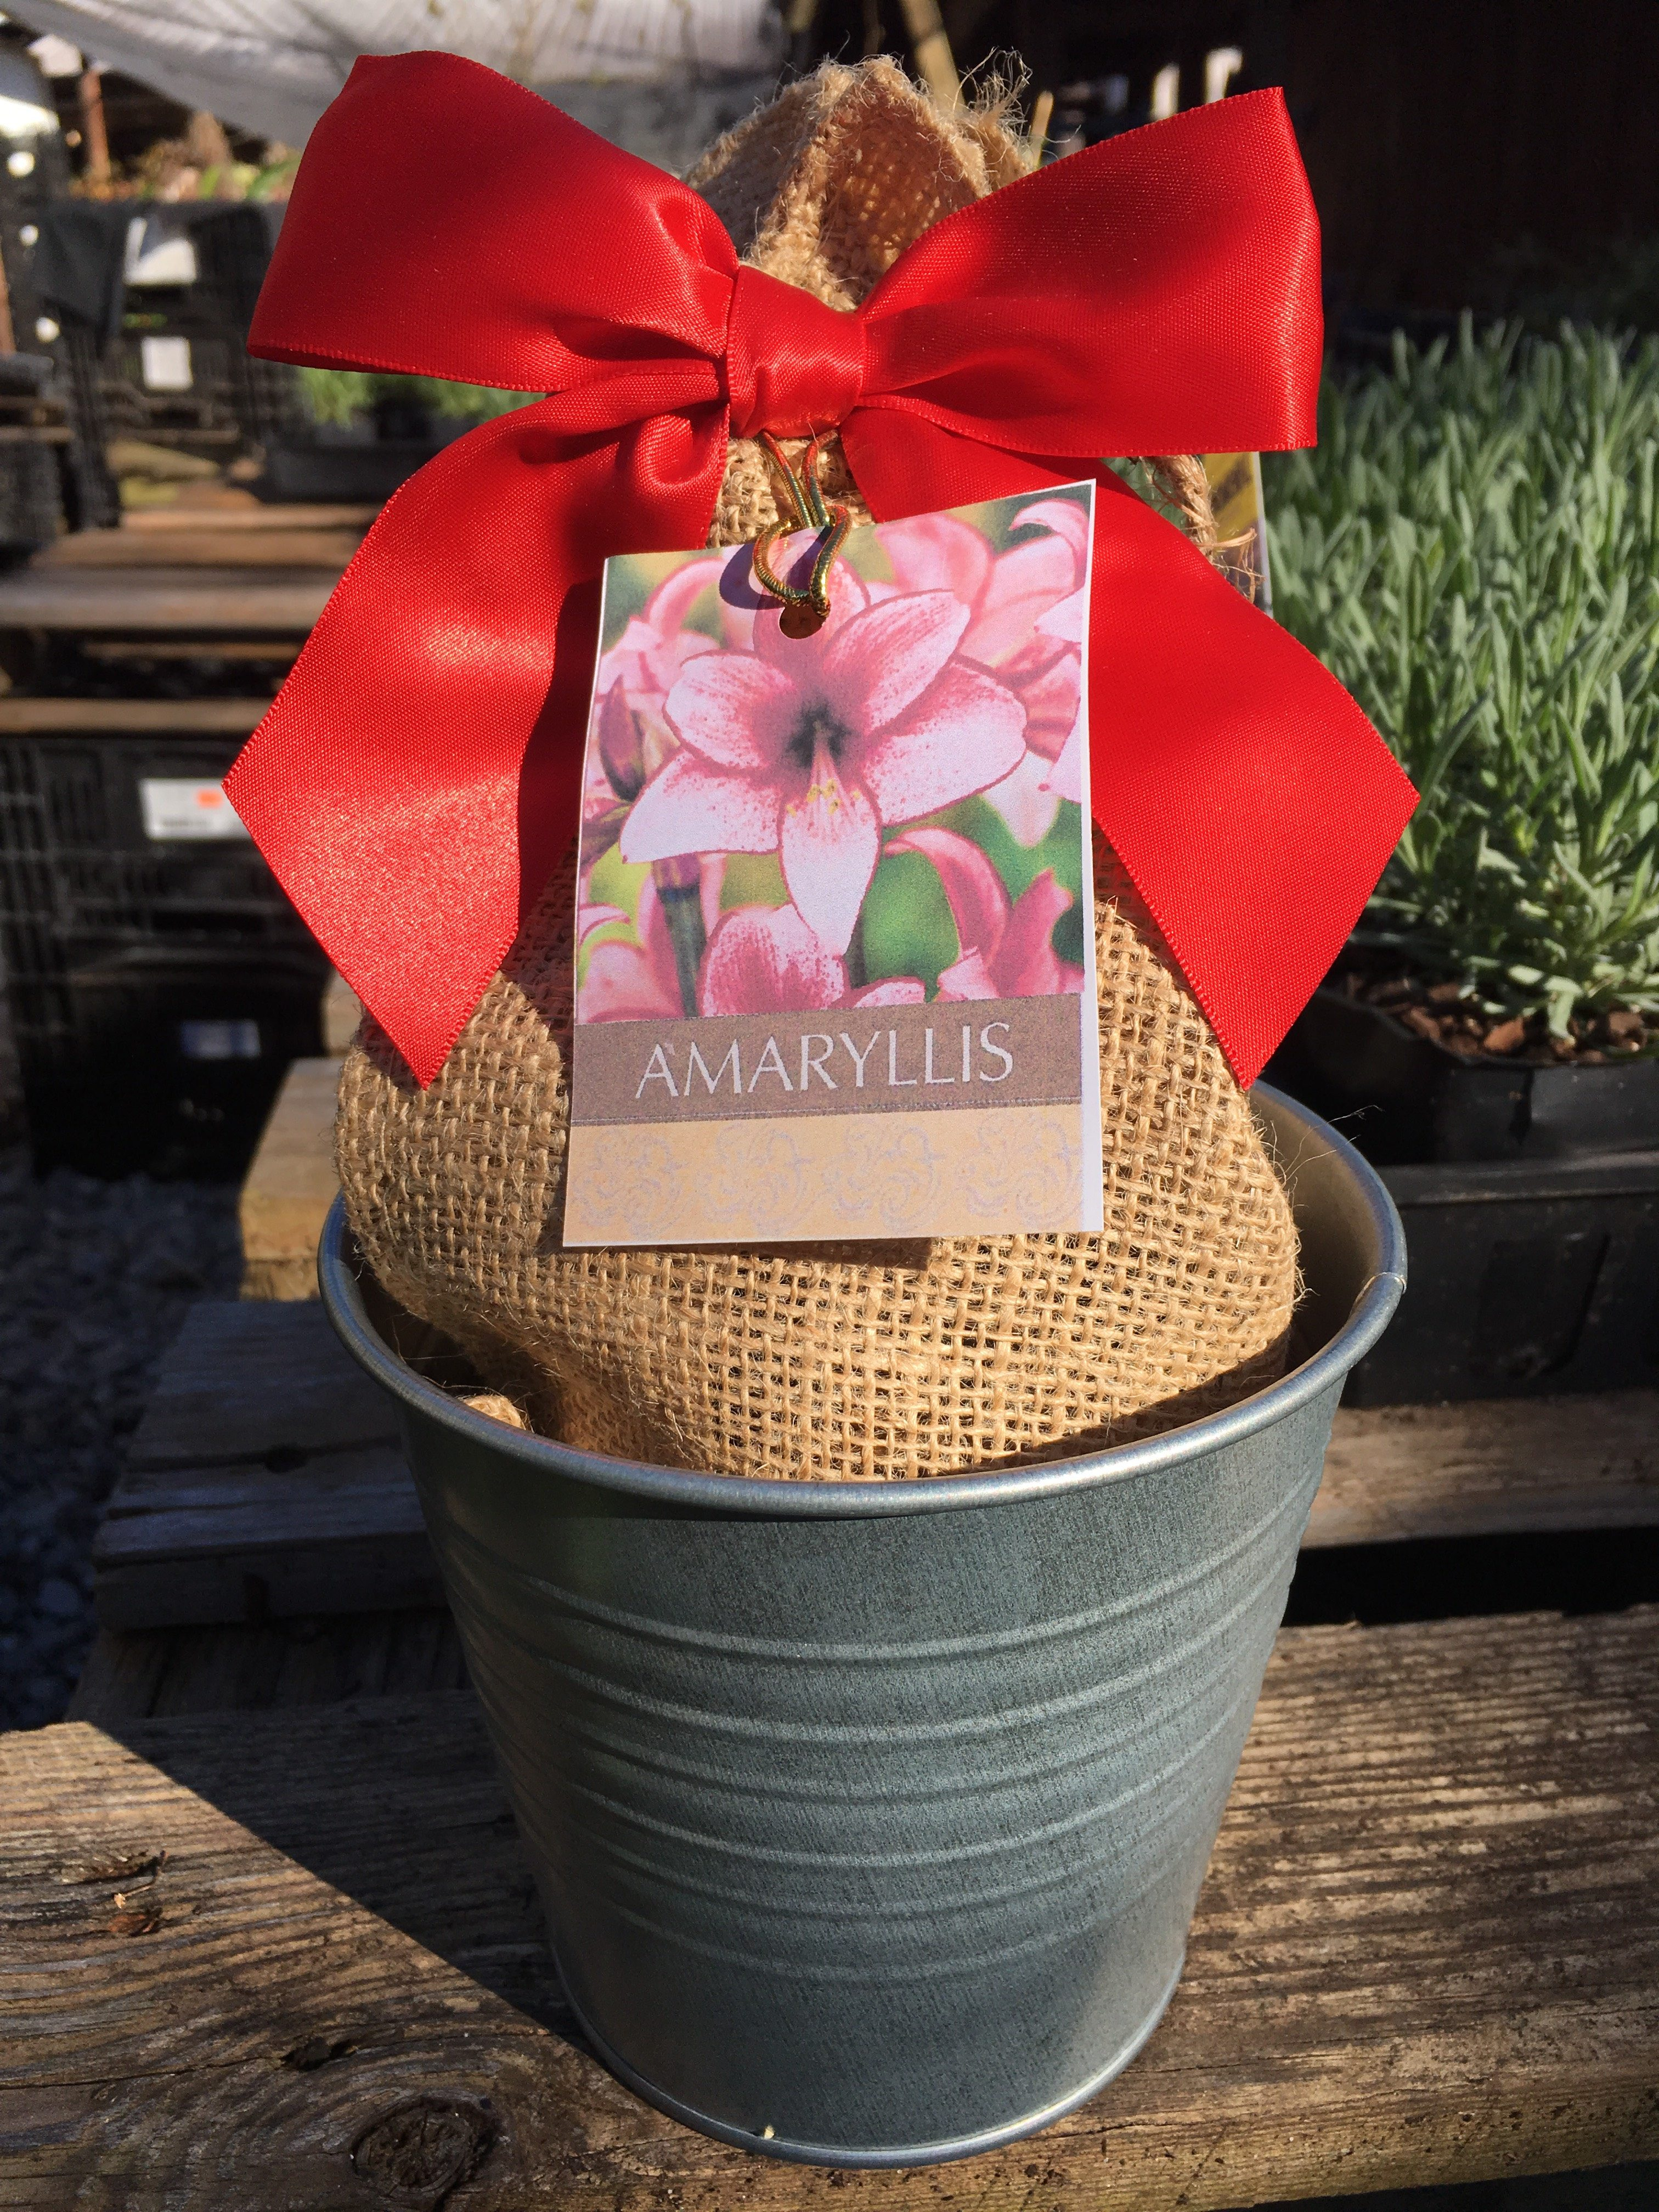 An amaryllis grow kit from our online plant nursery, an online nursery for amaryllis grow kits, tulip bulb mix, citronella plants, fast growing trees, paperwhite bulb mix, pink muhly grass and more!